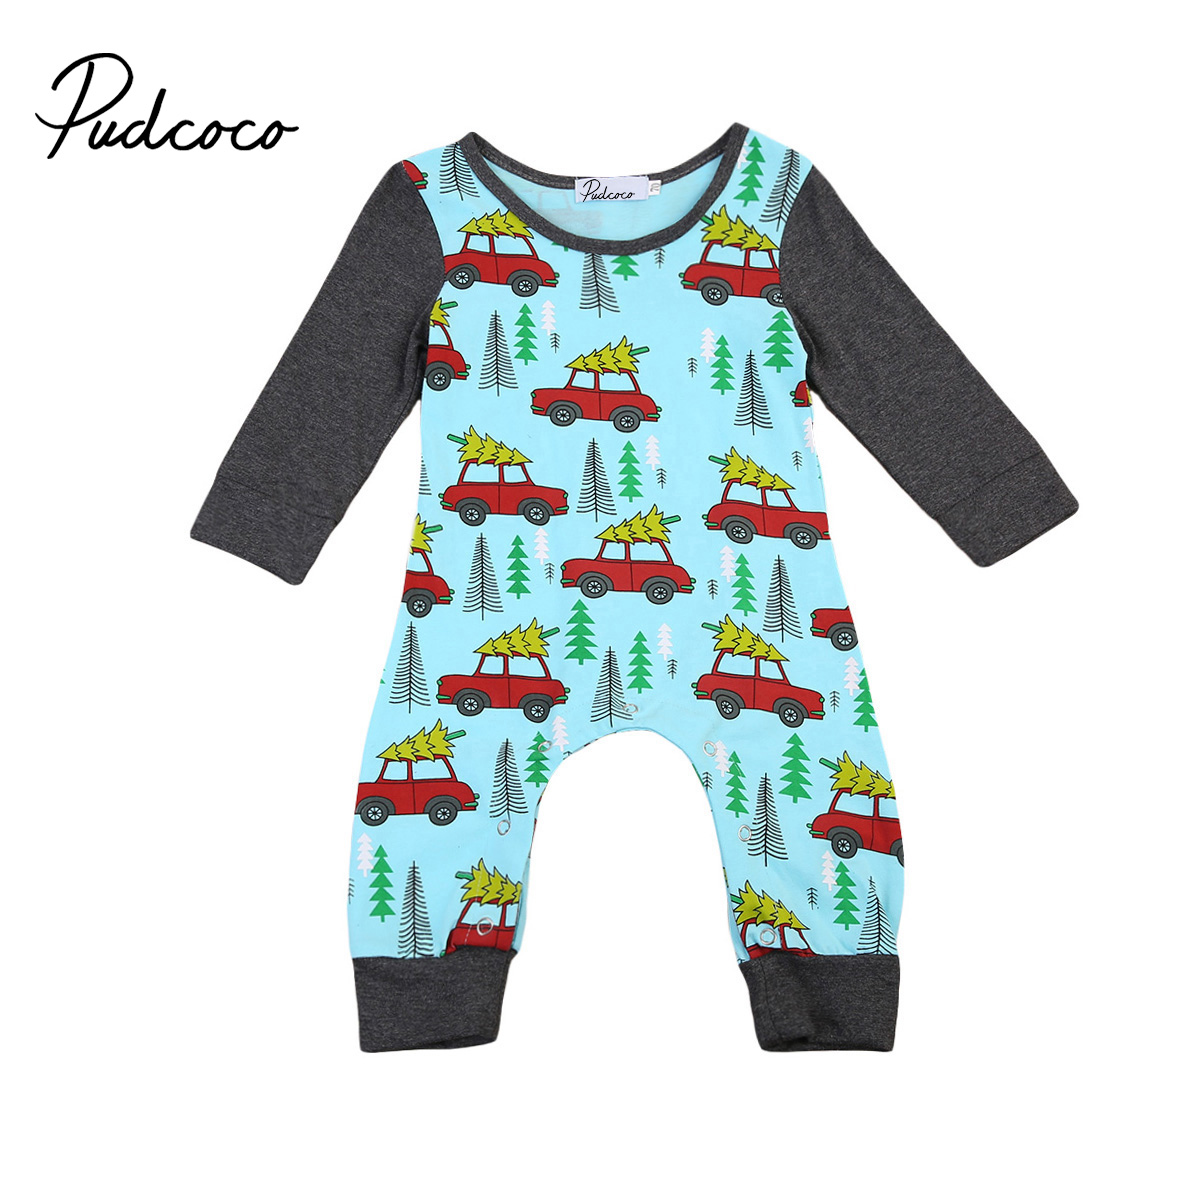 Pudcoco Newborn Infant Baby Boys Girls Clothing Xmas Cars Printed Long Sleeve Romper Jumpsuit Fall Cotton One-Piece Outfit pudcoco newborn infant baby girls clothes short sleeve floral romper headband summer cute cotton one piece clothes